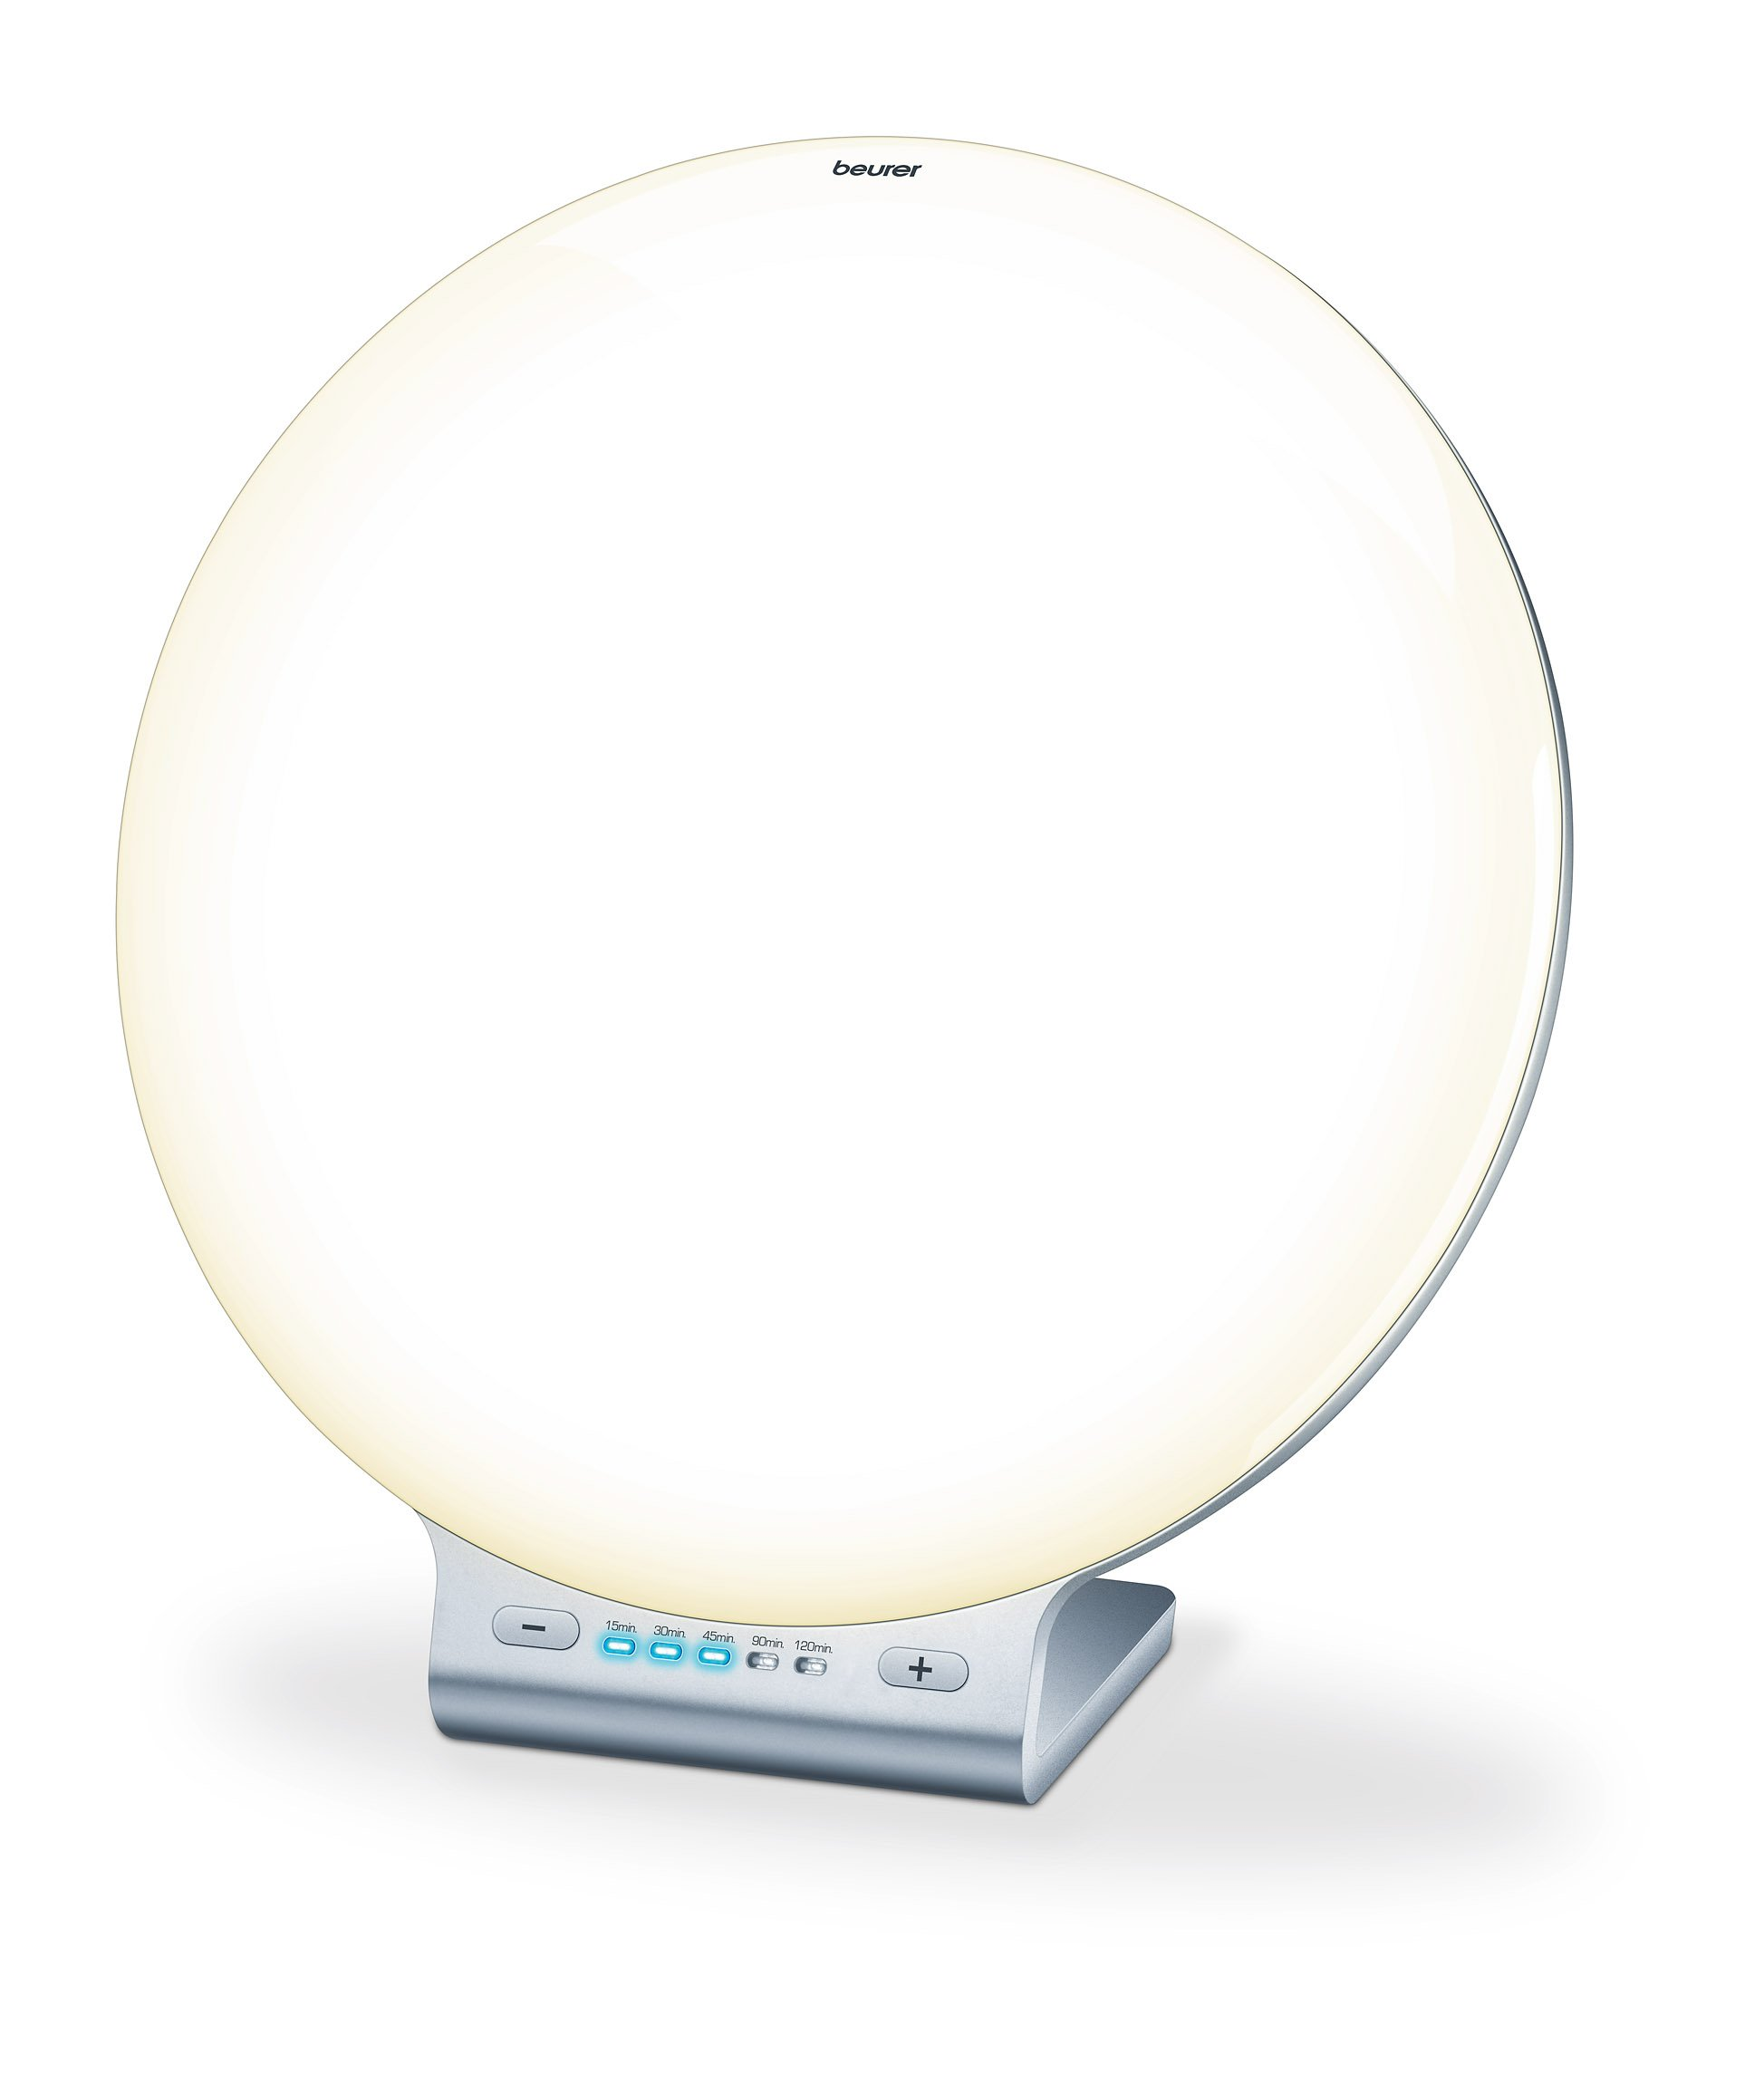 Beurer - TL 70 Light Therapy Lamp - 3 Years Warranty